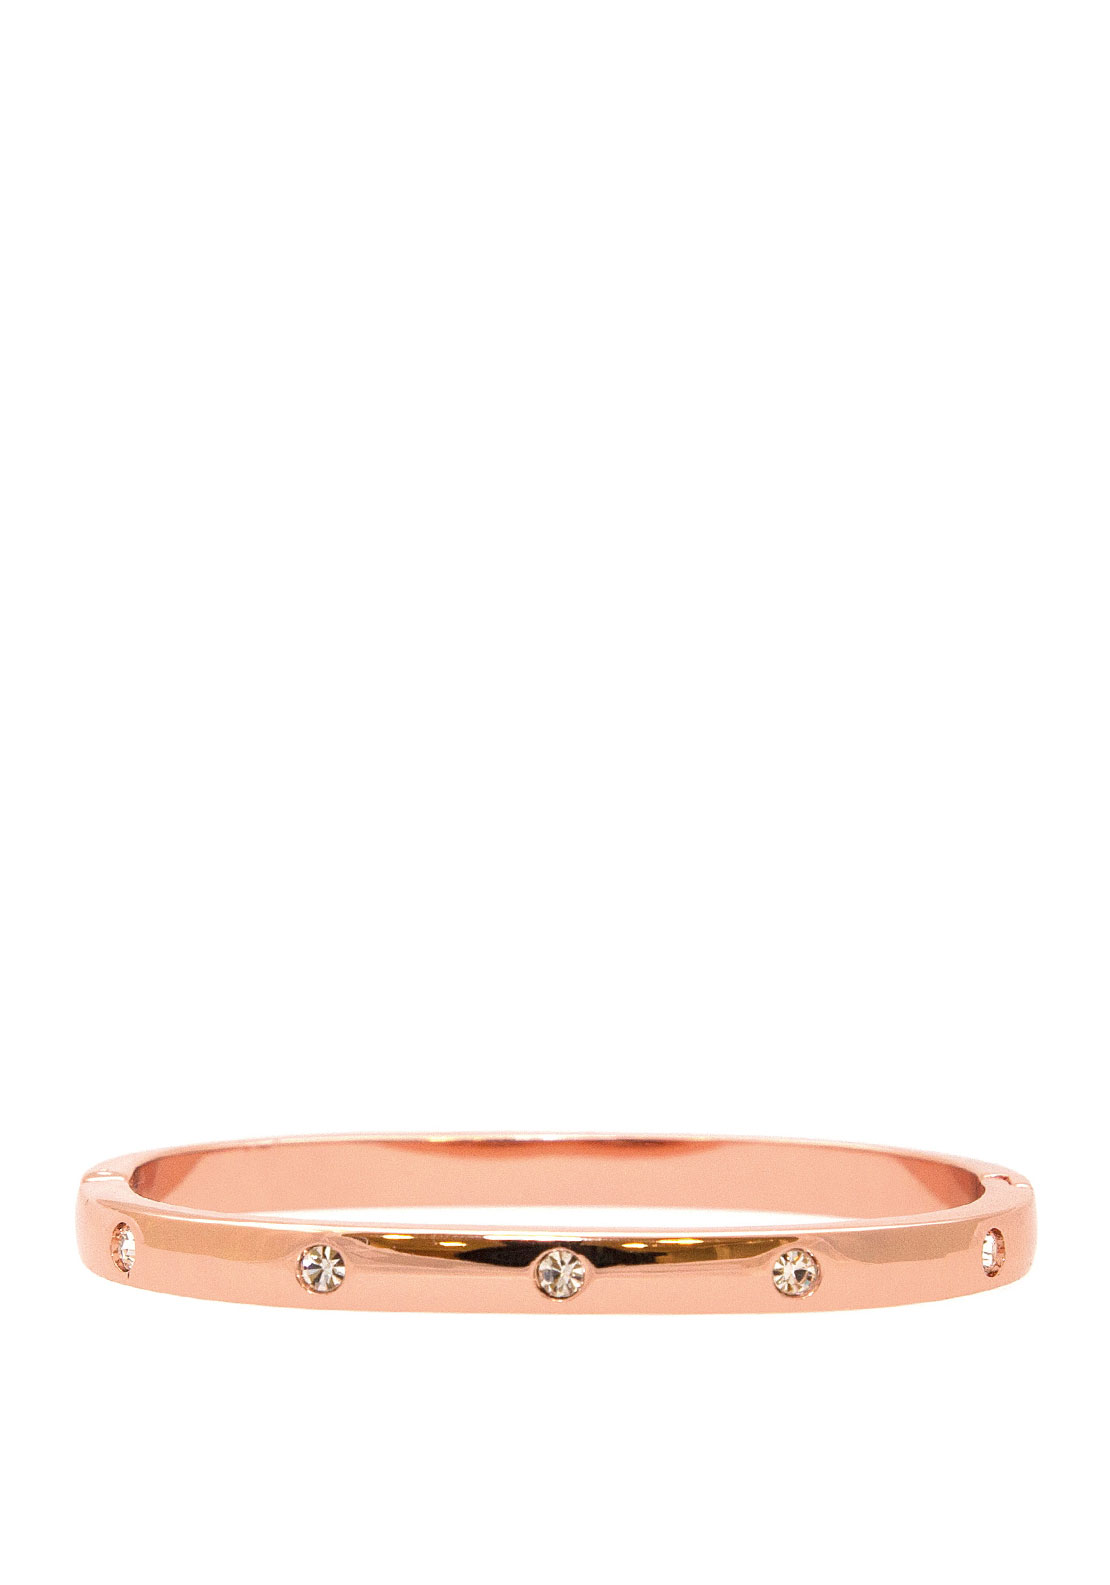 Absolute Square Clear Stone Set Bangle, Rose Gold